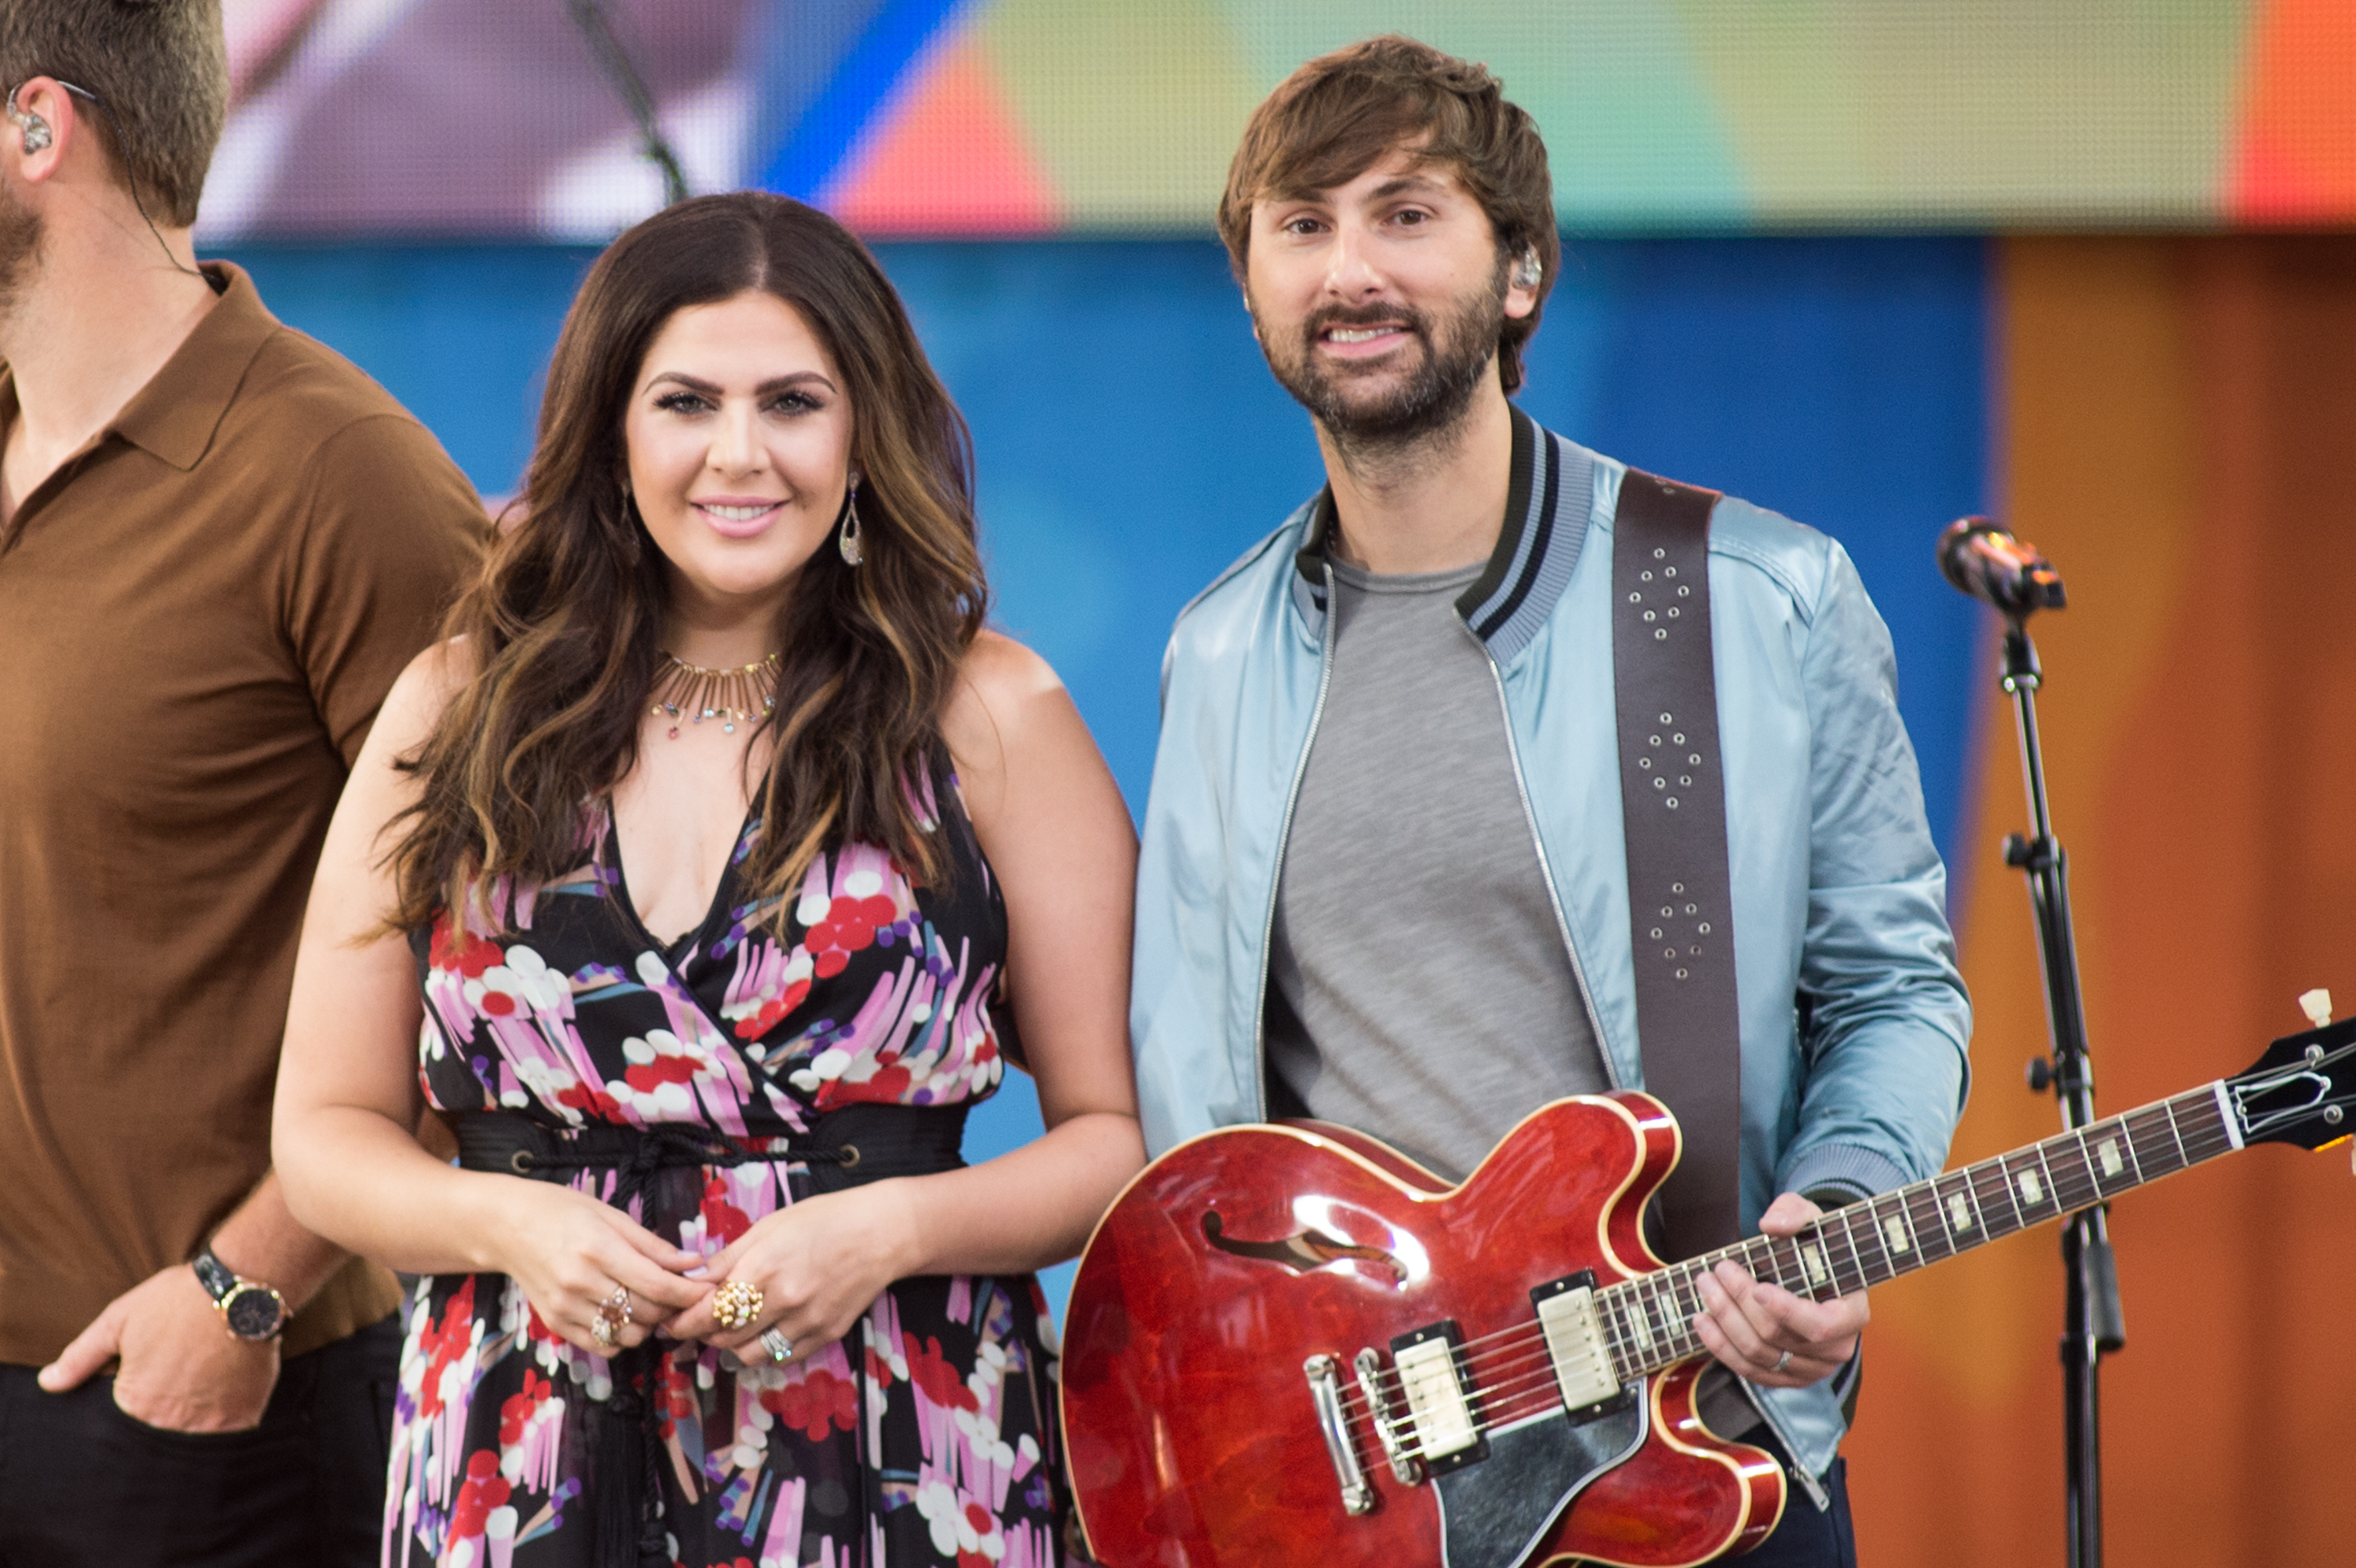 #Twinning! There's more to the Lady Antebellum baby news